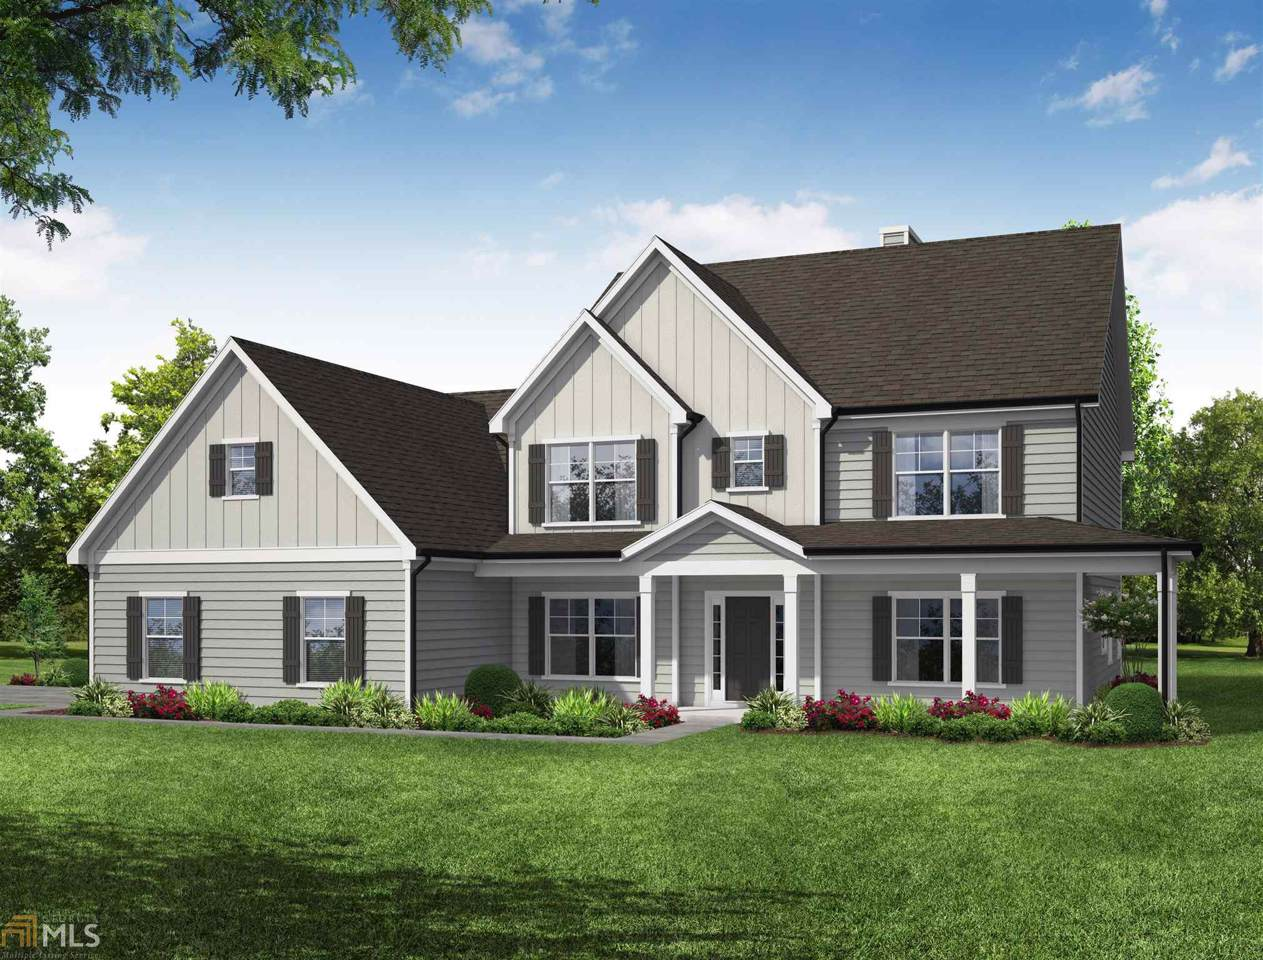 0 Paige Ct - Lot 5 - Photo 1